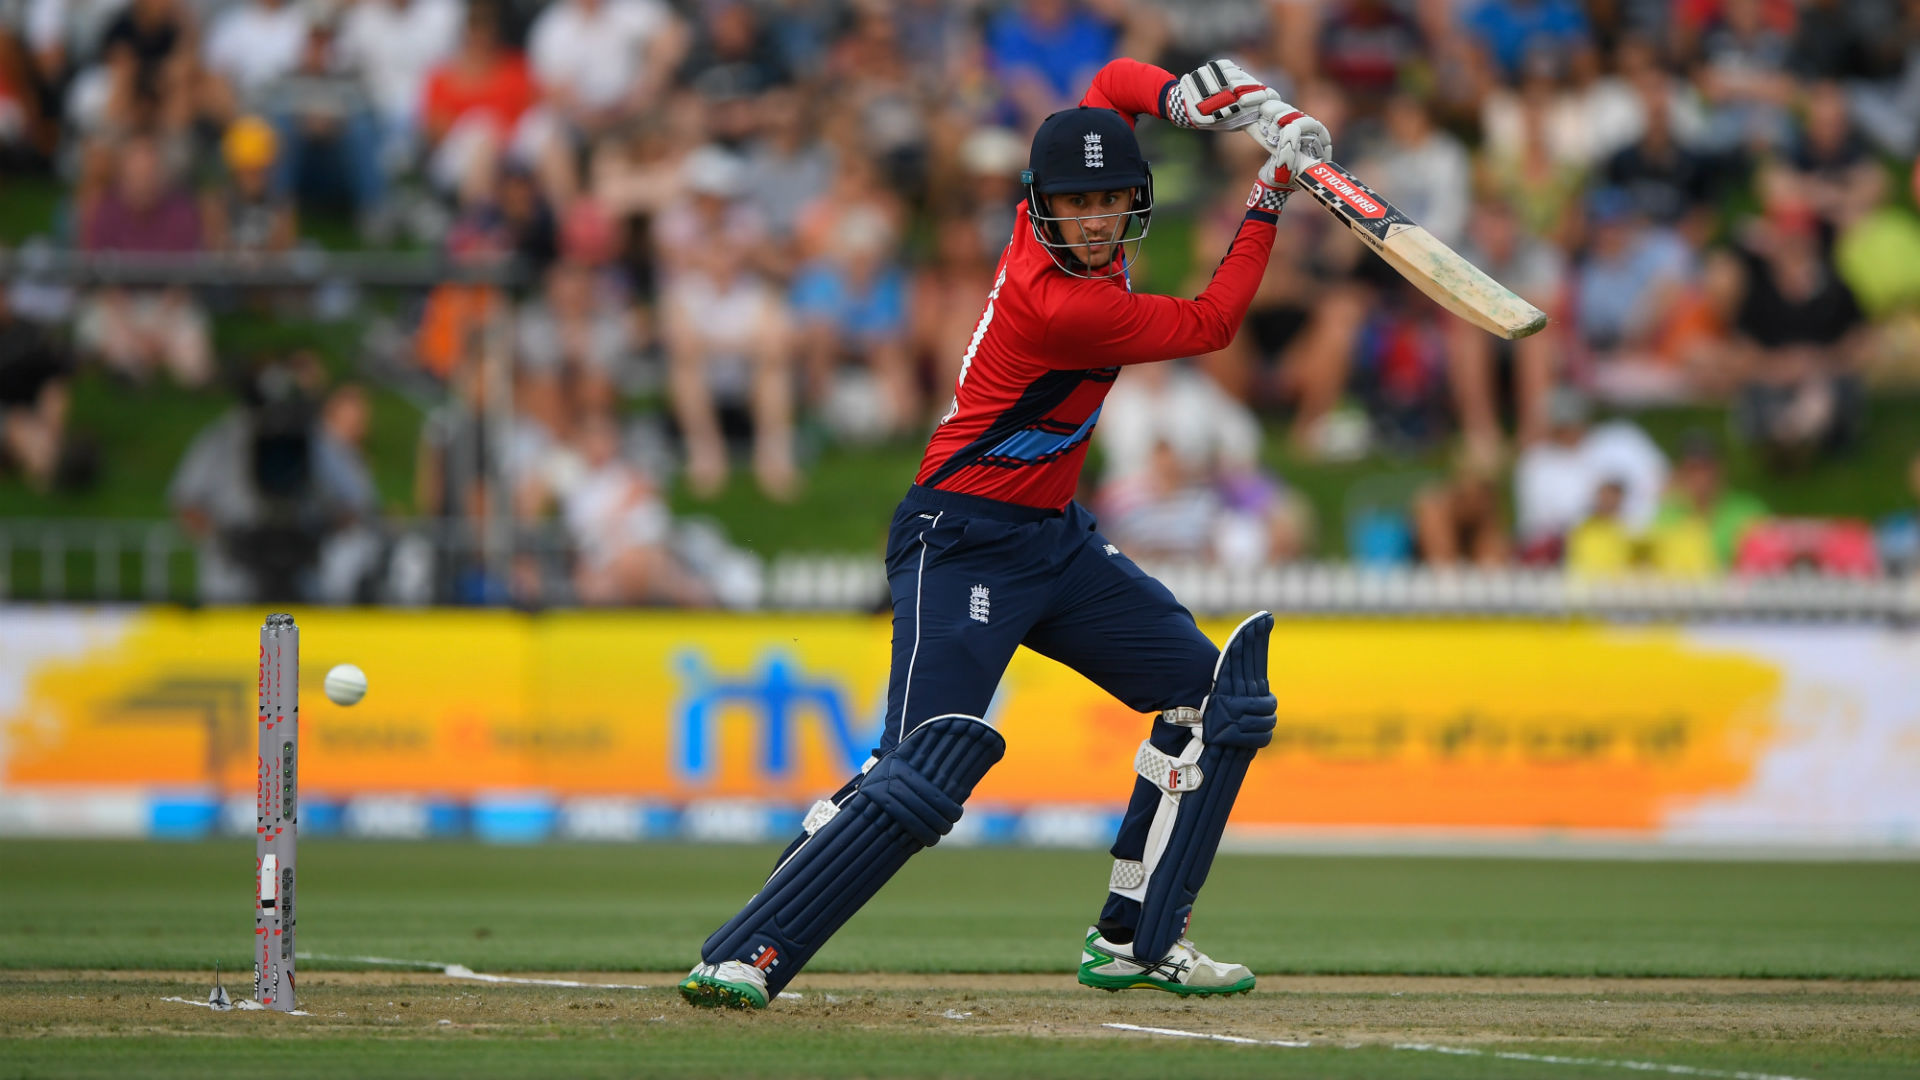 Alex Hales could secure an England recall, a year after he was dropped from World Cup plans due to off-field behaviour.